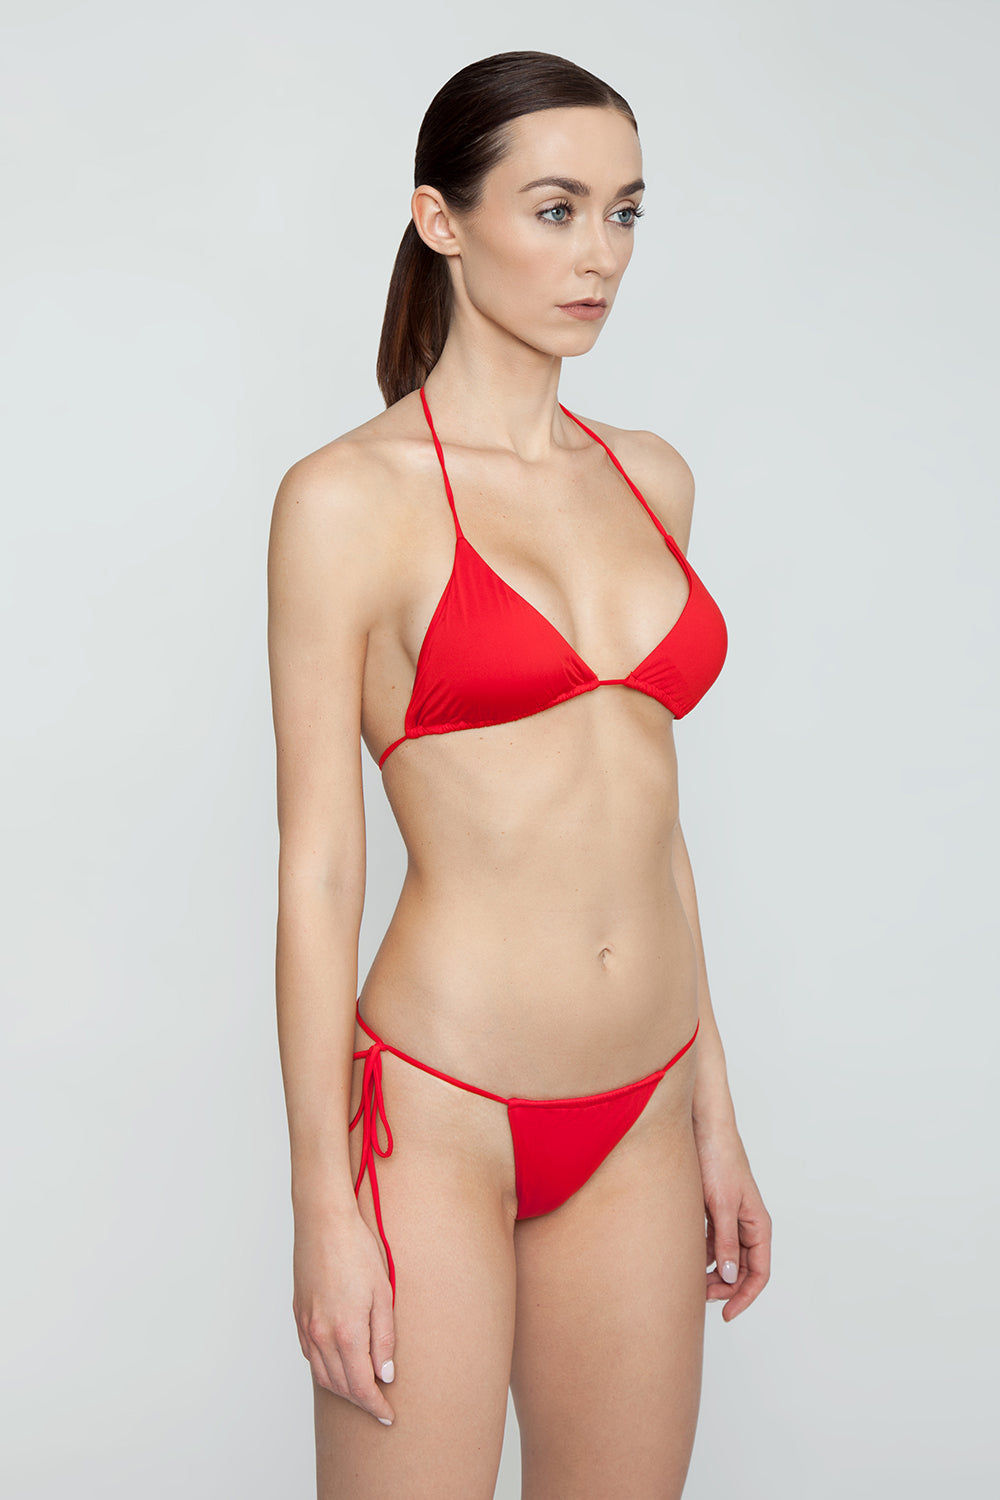 MONICA HANSEN BEACHWEAR That 90's Vibe String Bikini Bottom - Red Bikini Bottom   Red  Monica Hansen That 90's Vibe String Bikini Bottom - Red Single tie side bikini bottom Thin string sides High cut leg  Adjustable coverage in front and back Skimpy to cheeky coverage  Side View